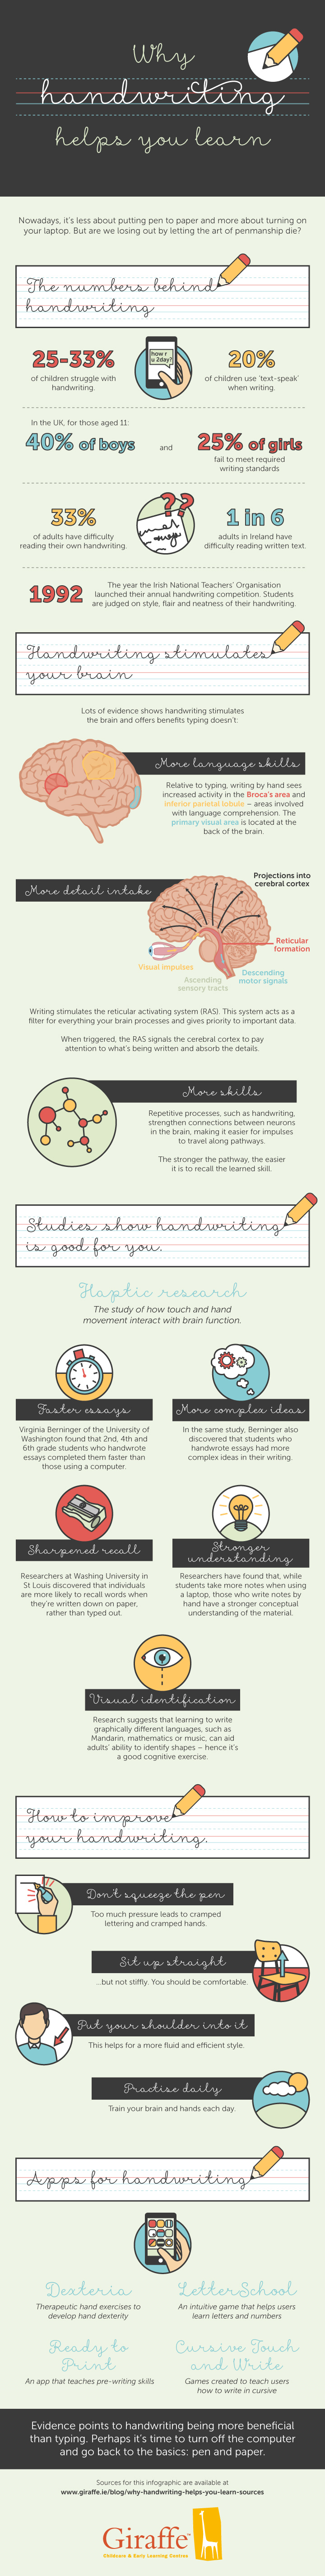 why-handwriting-helps-you-learn